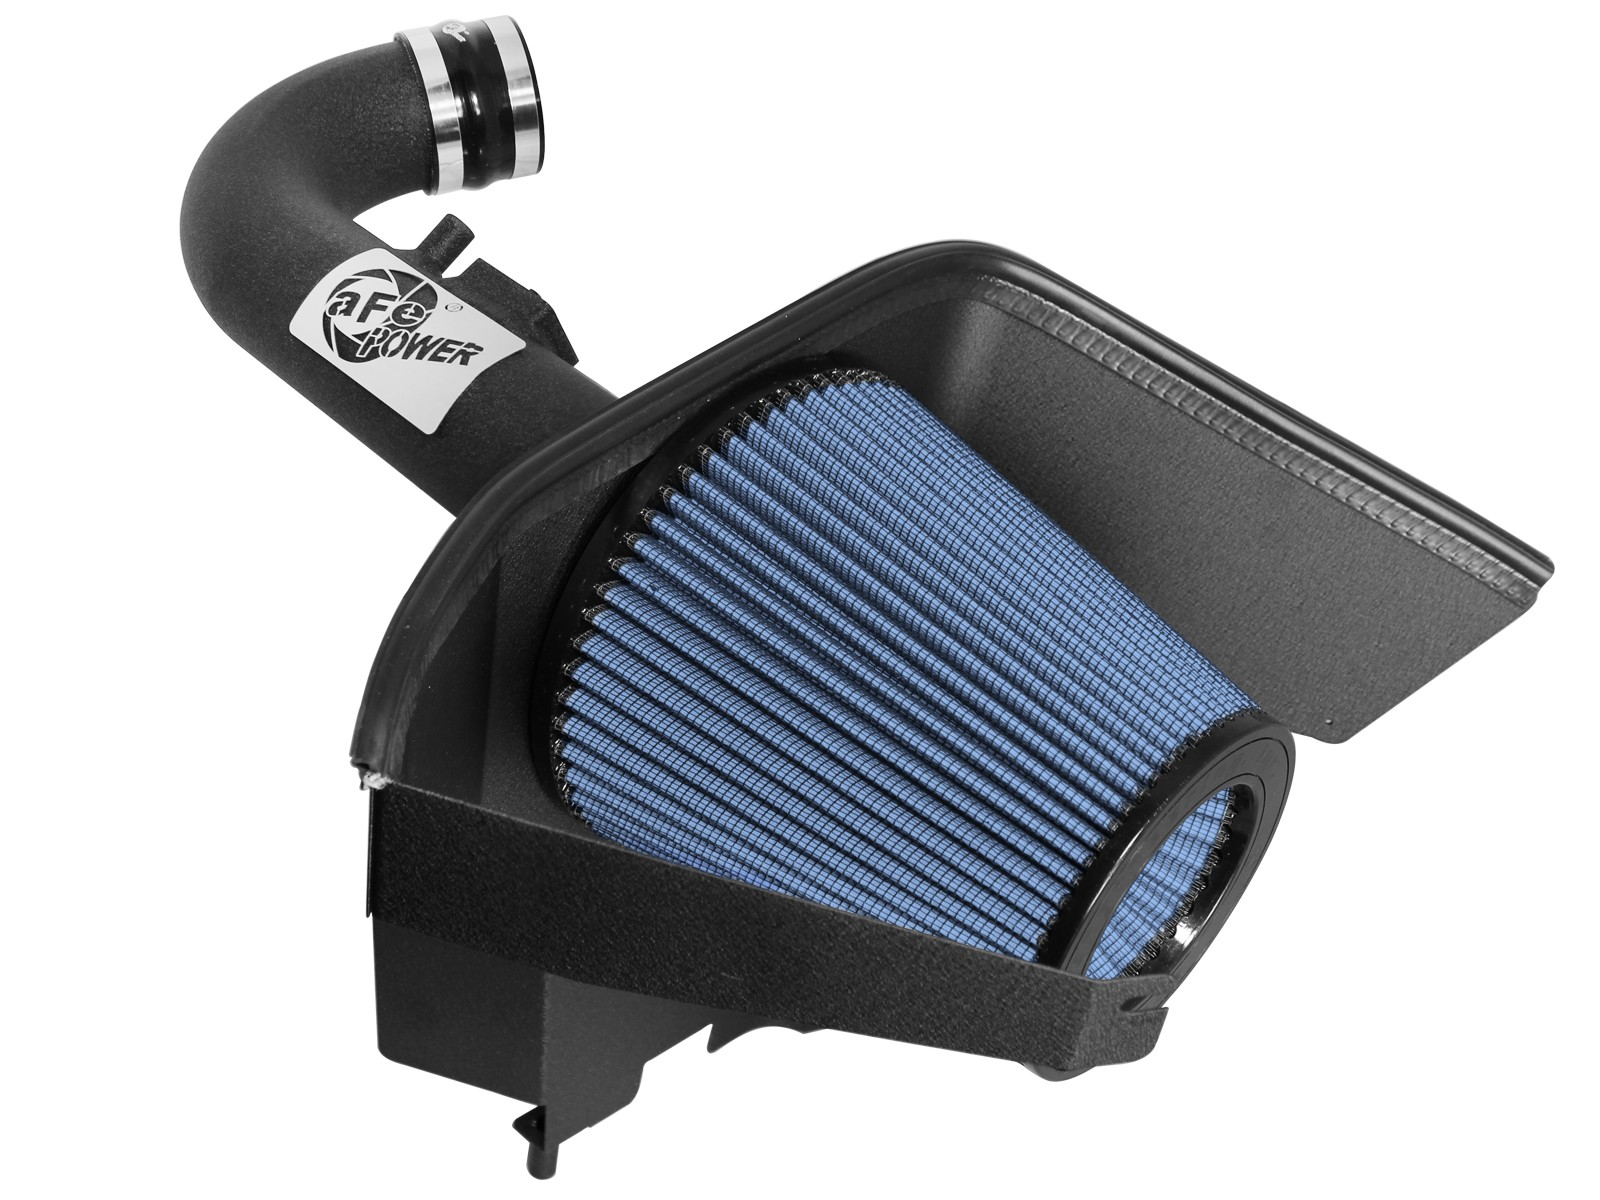 aFe POWER 54-12022 Magnum FORCE Stage-2 Pro 5R Cold Air Intake System